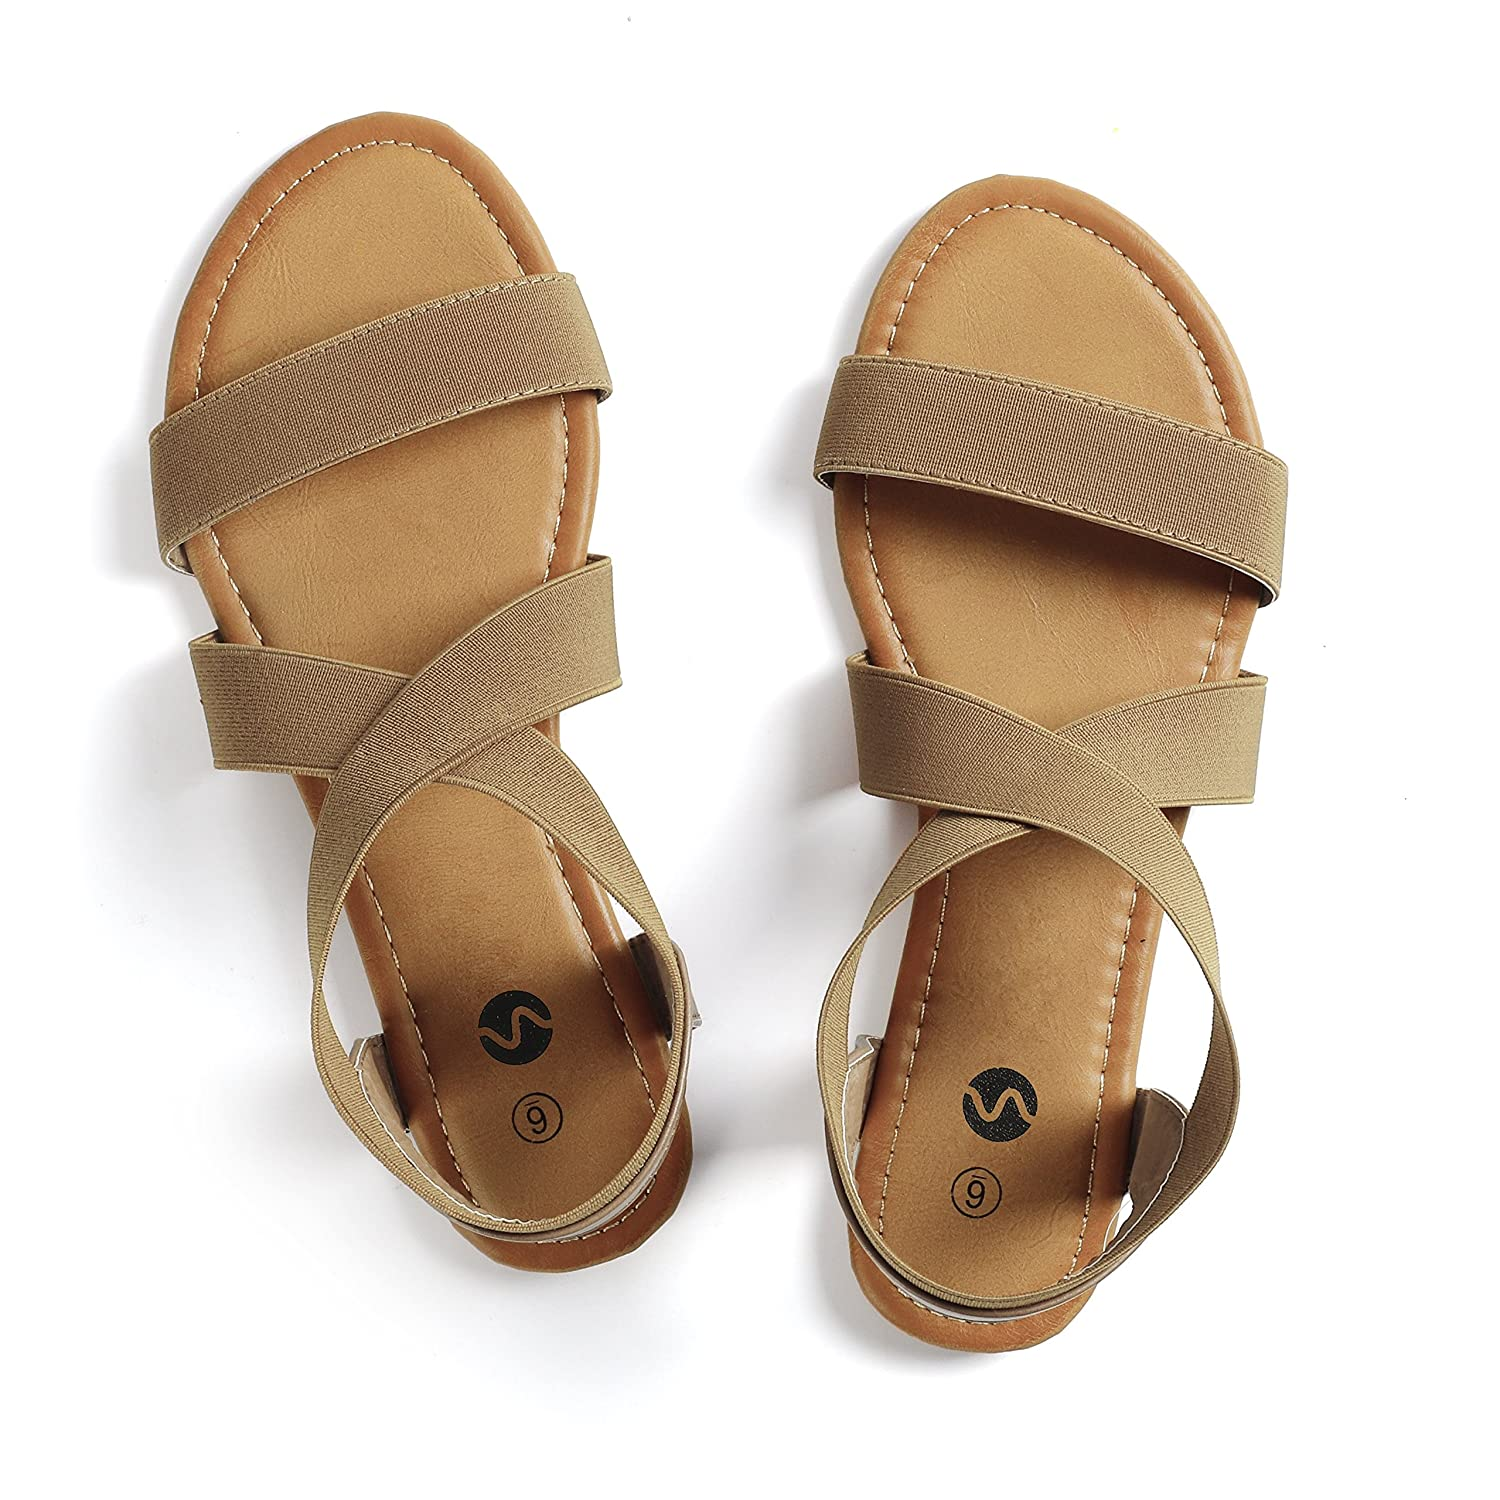 Rekayla Flat Elastic Sandals for Women